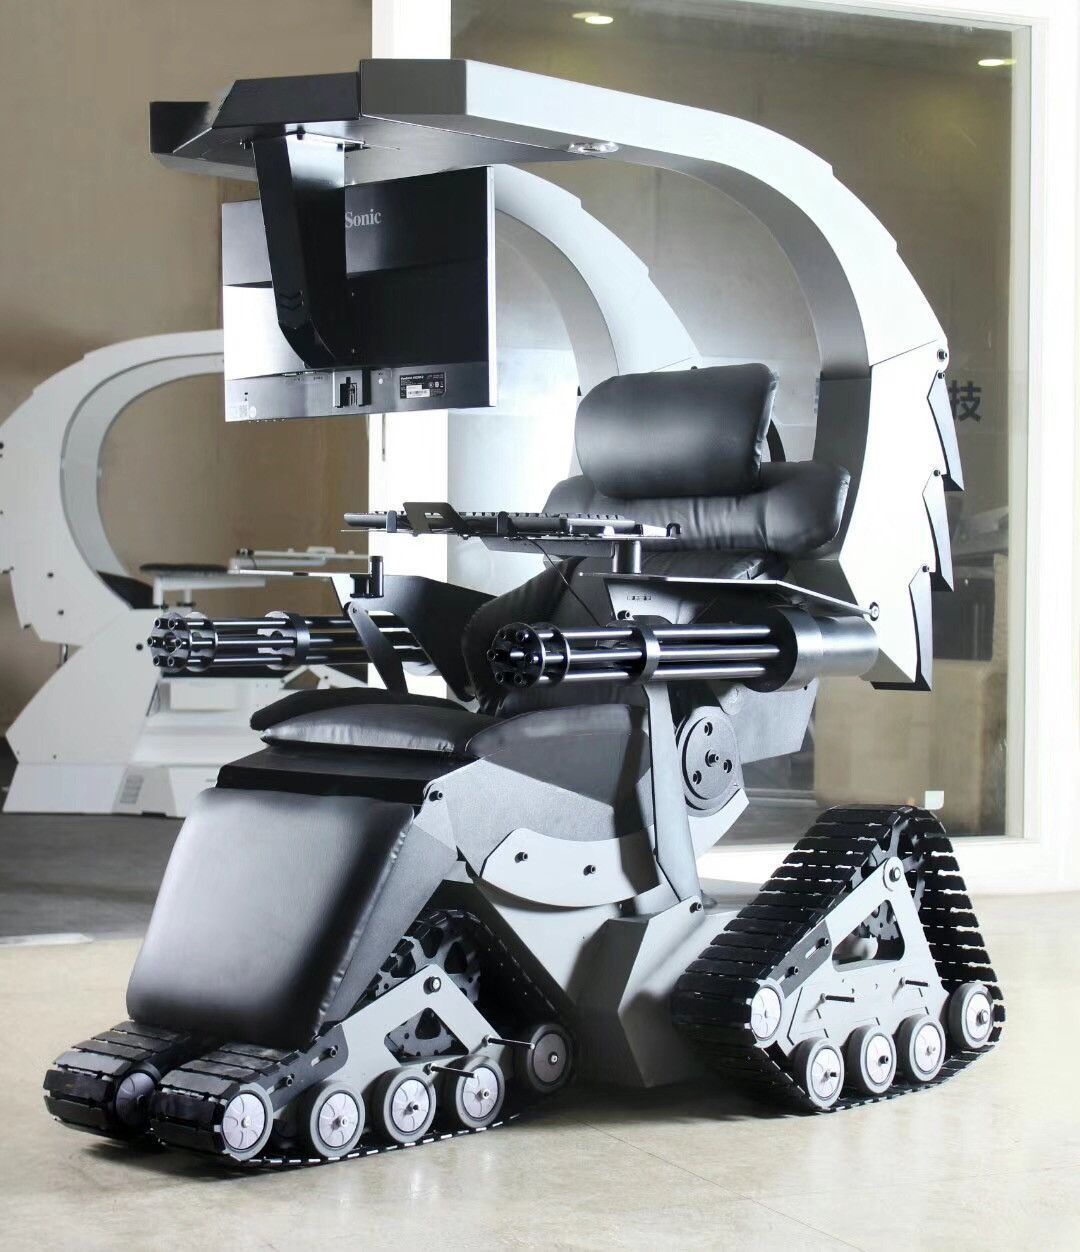 Most crazy PC gaming chair station of the world #gamingsetup PC Gaming setup of crazy idea and design from imperator works #gamingsetup